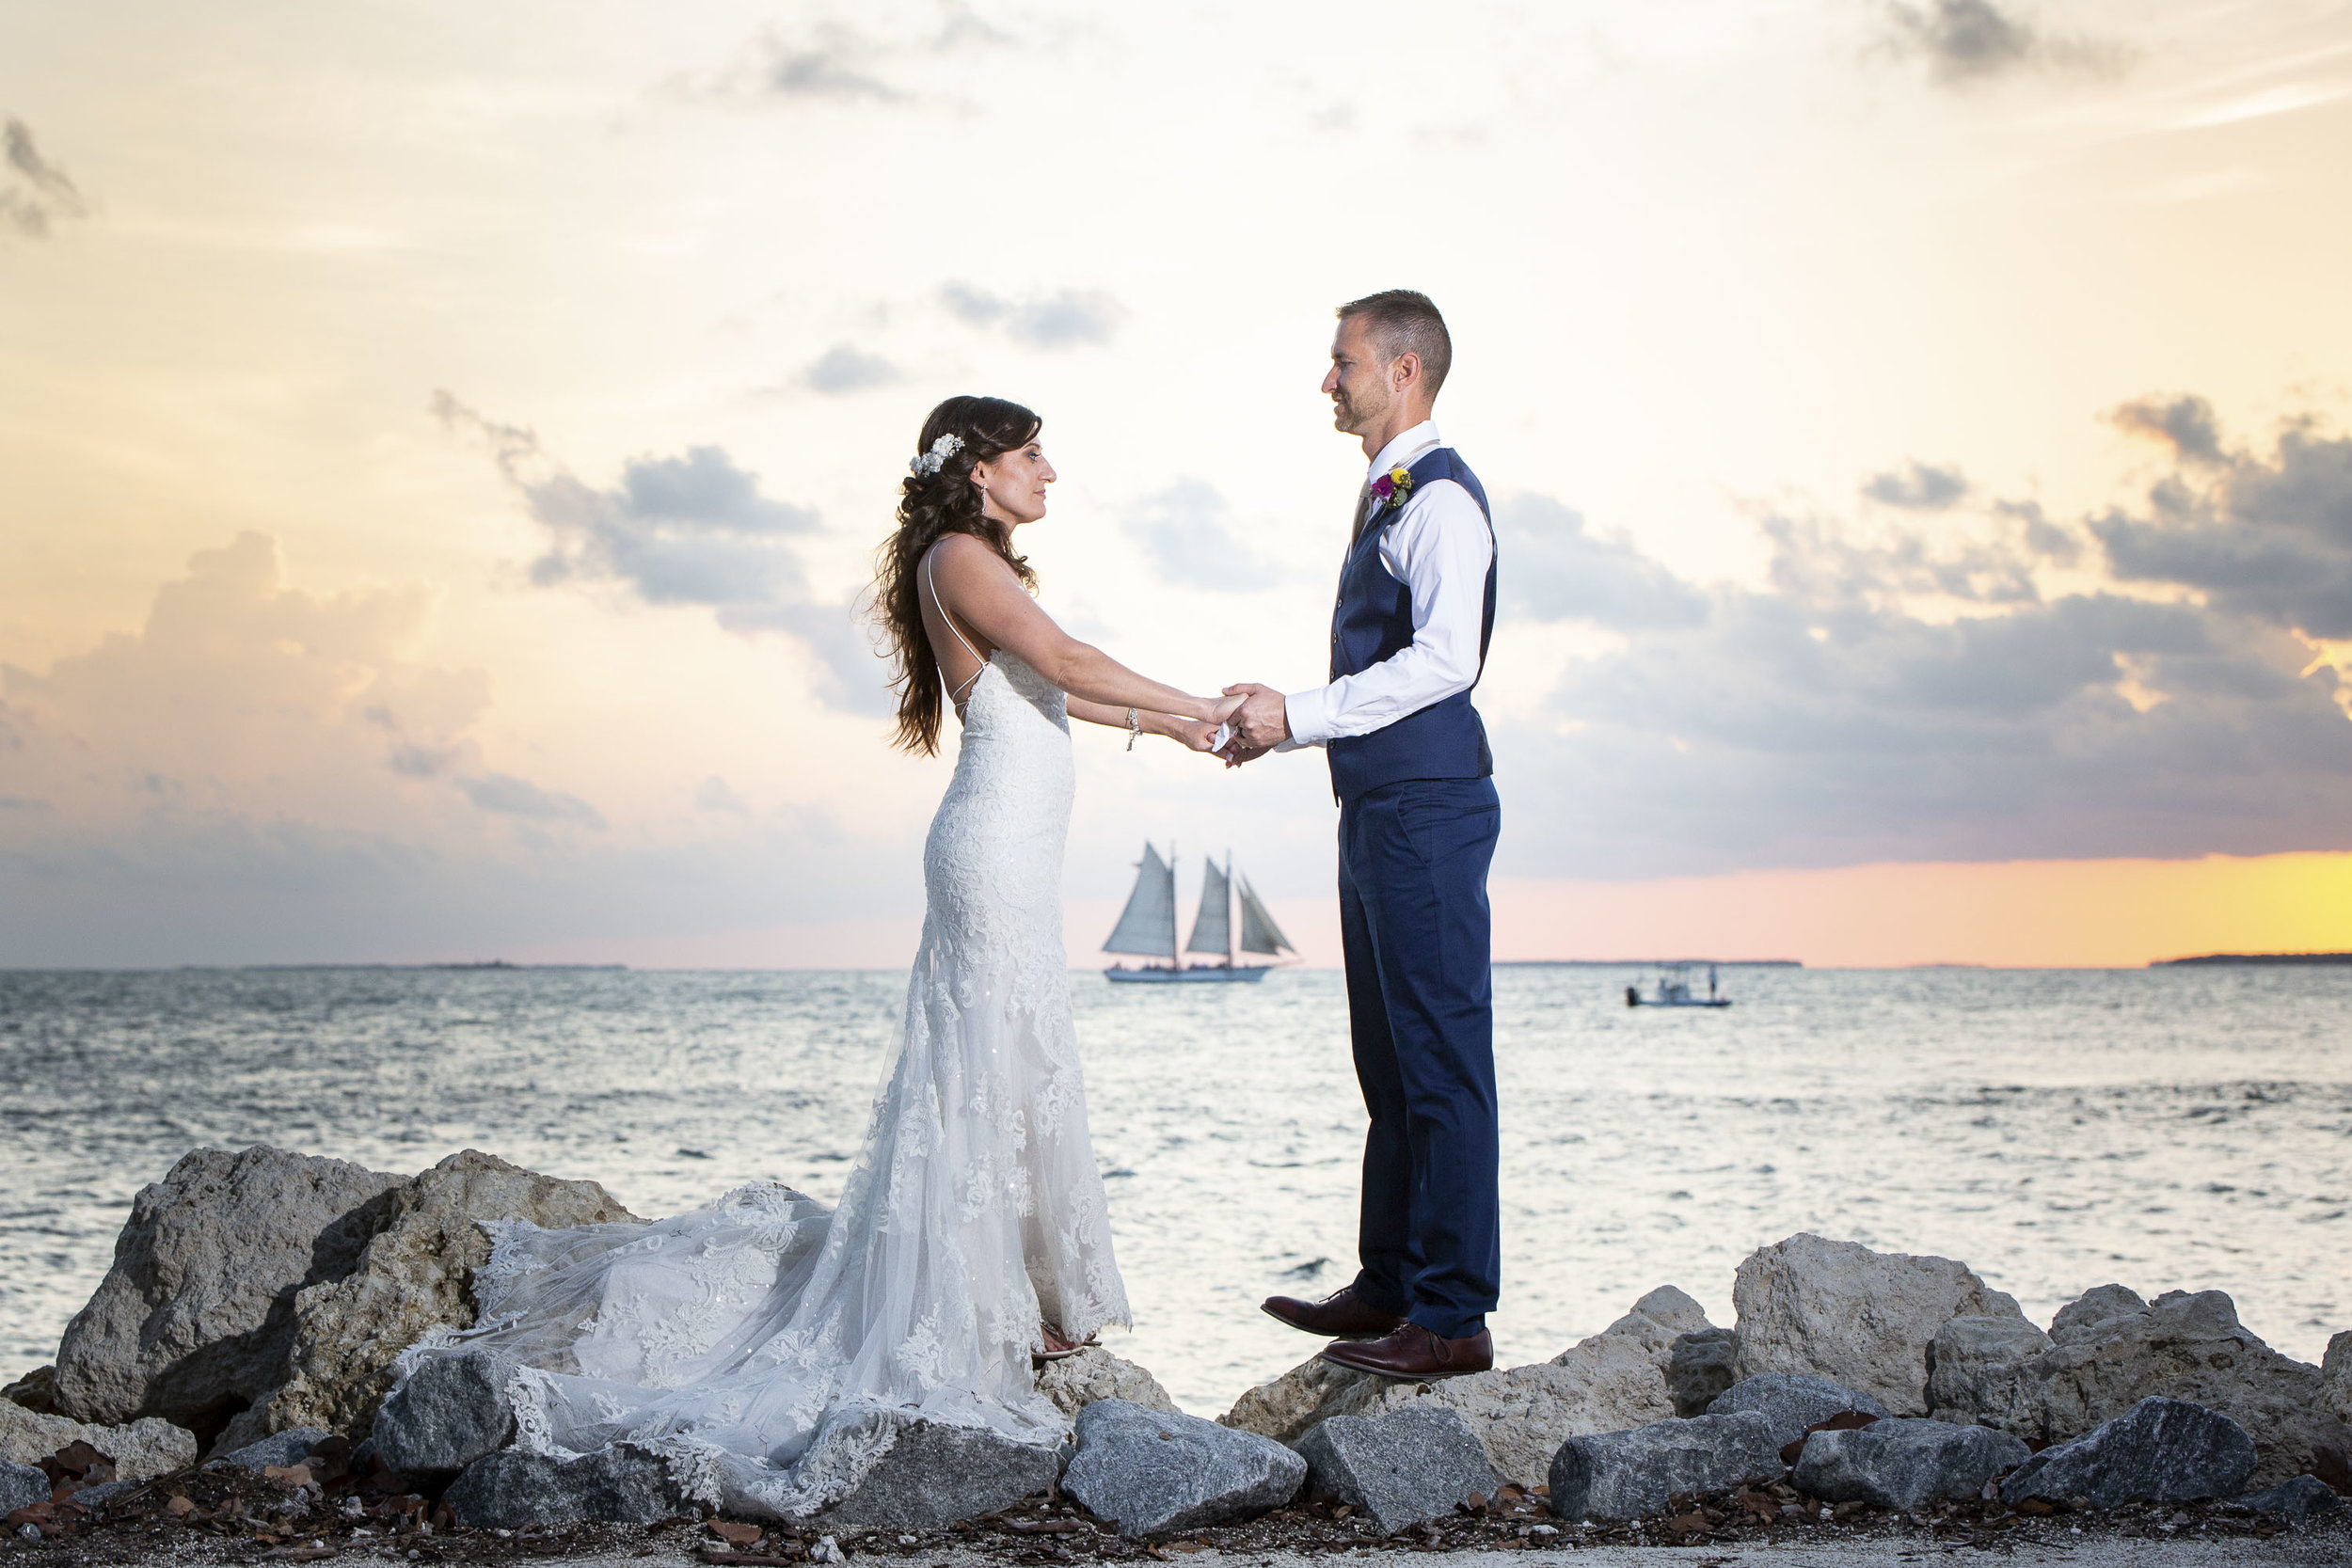 Sailboat passes behind couple during their Key West wedding